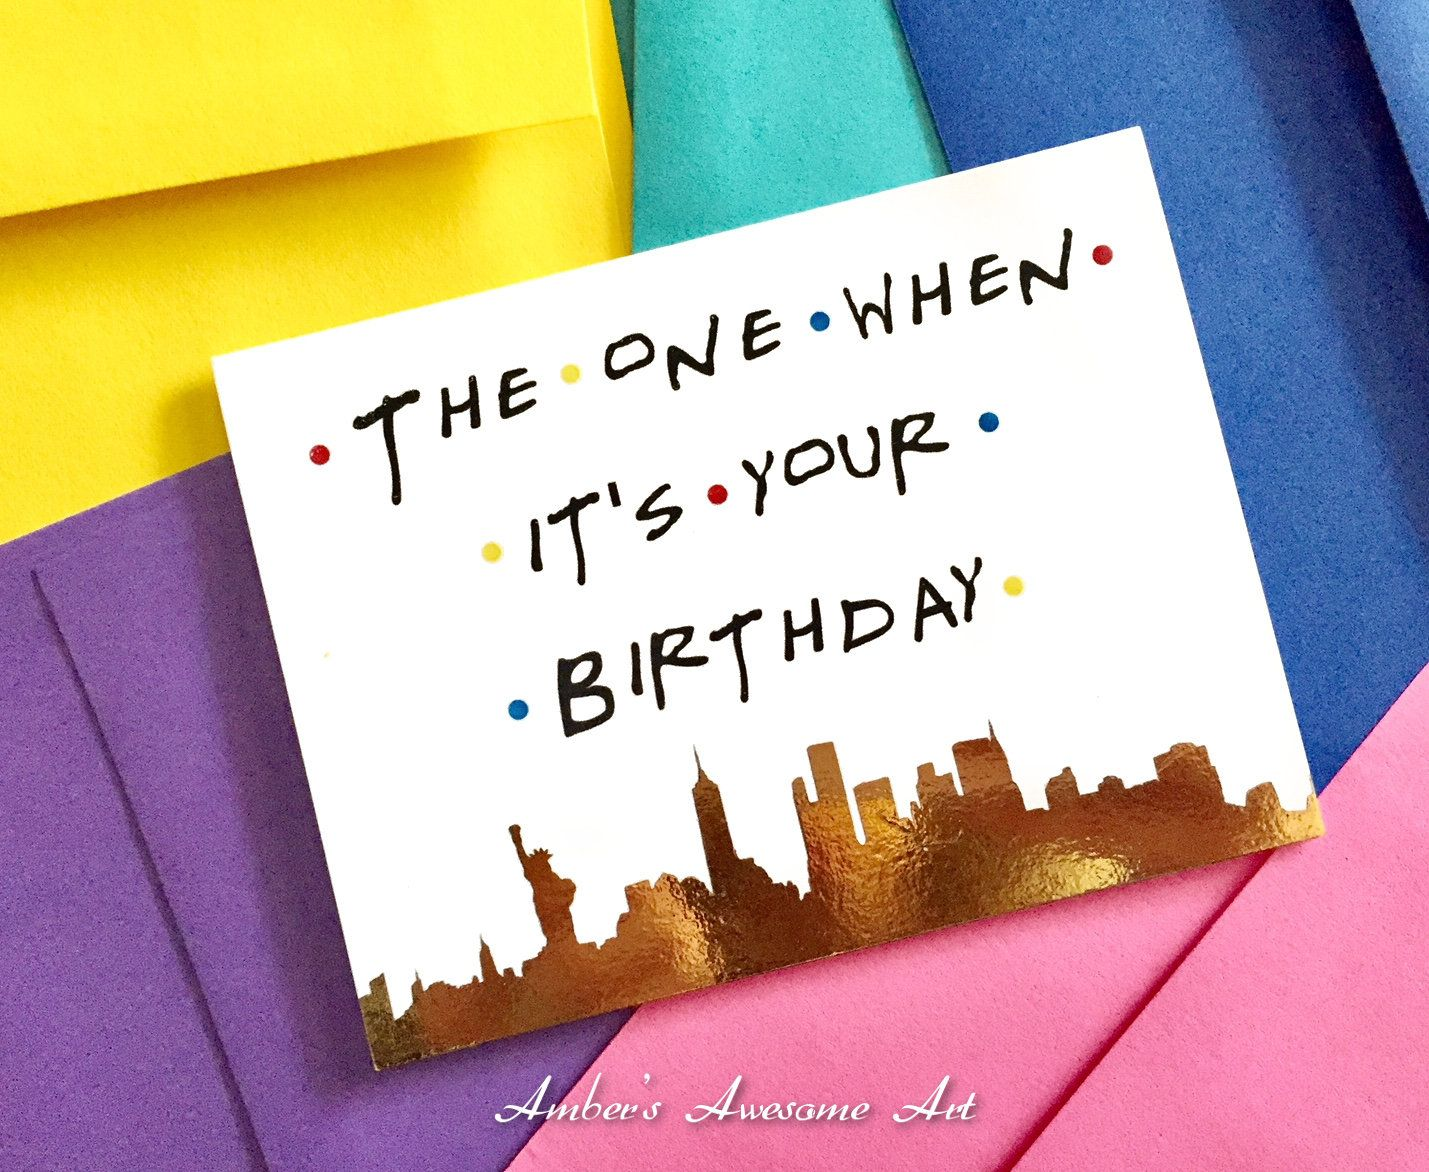 The One When its your birthday, Friends tv show, birthday card, friends theme birthday, friends tv card, greeting card, funny birthday